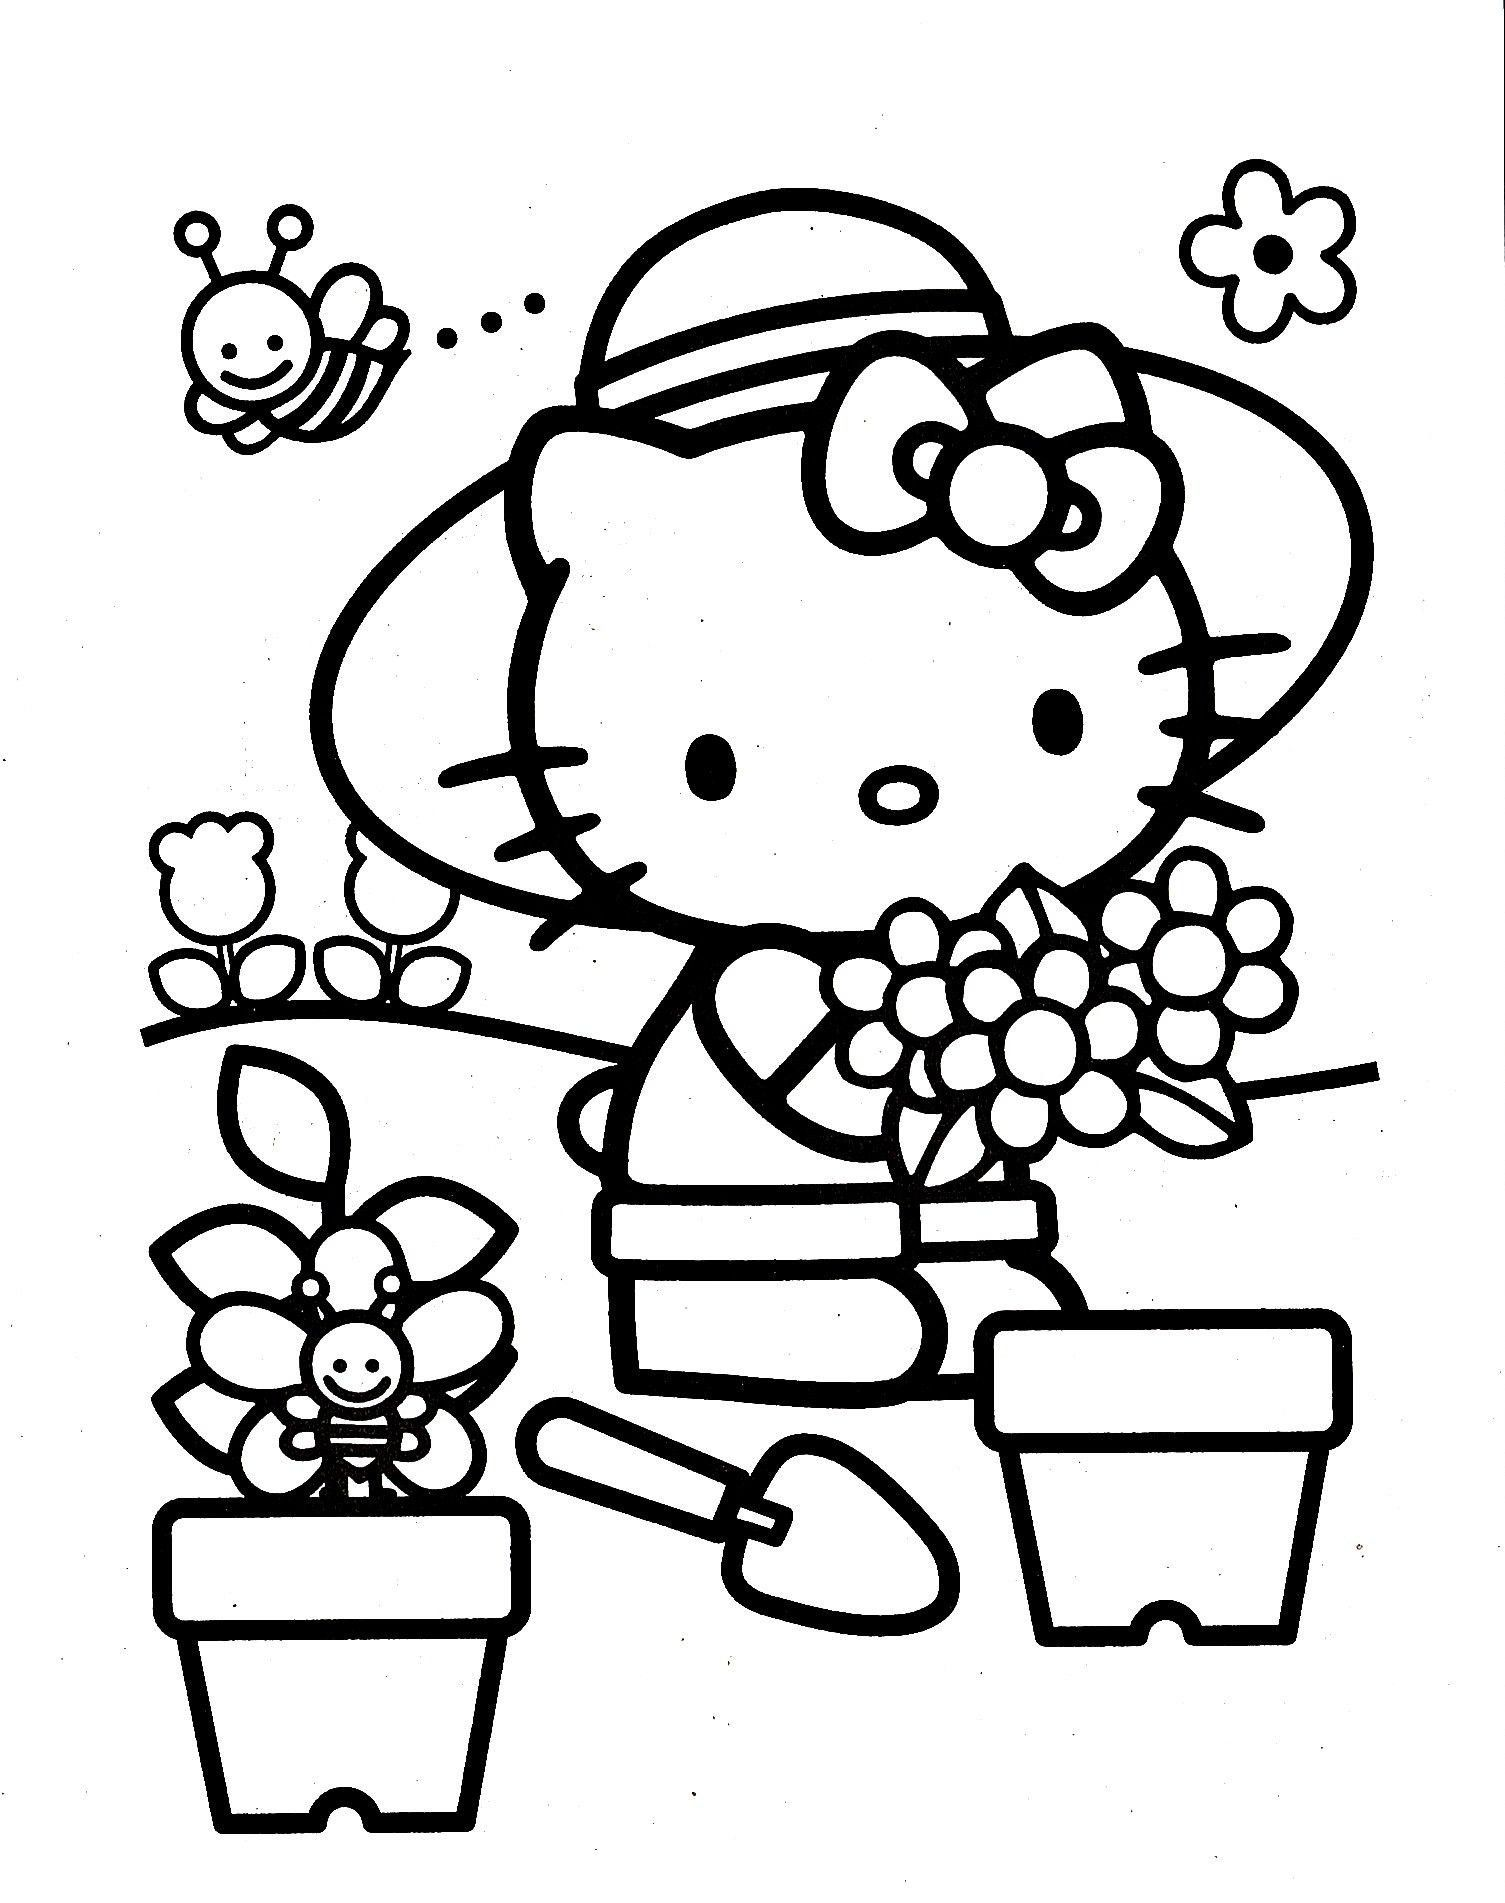 Hello Kitty Coloring Pages Hello Kitty Coloring Page With Images 刺繍 図案 塗り絵 子供 室内 遊び